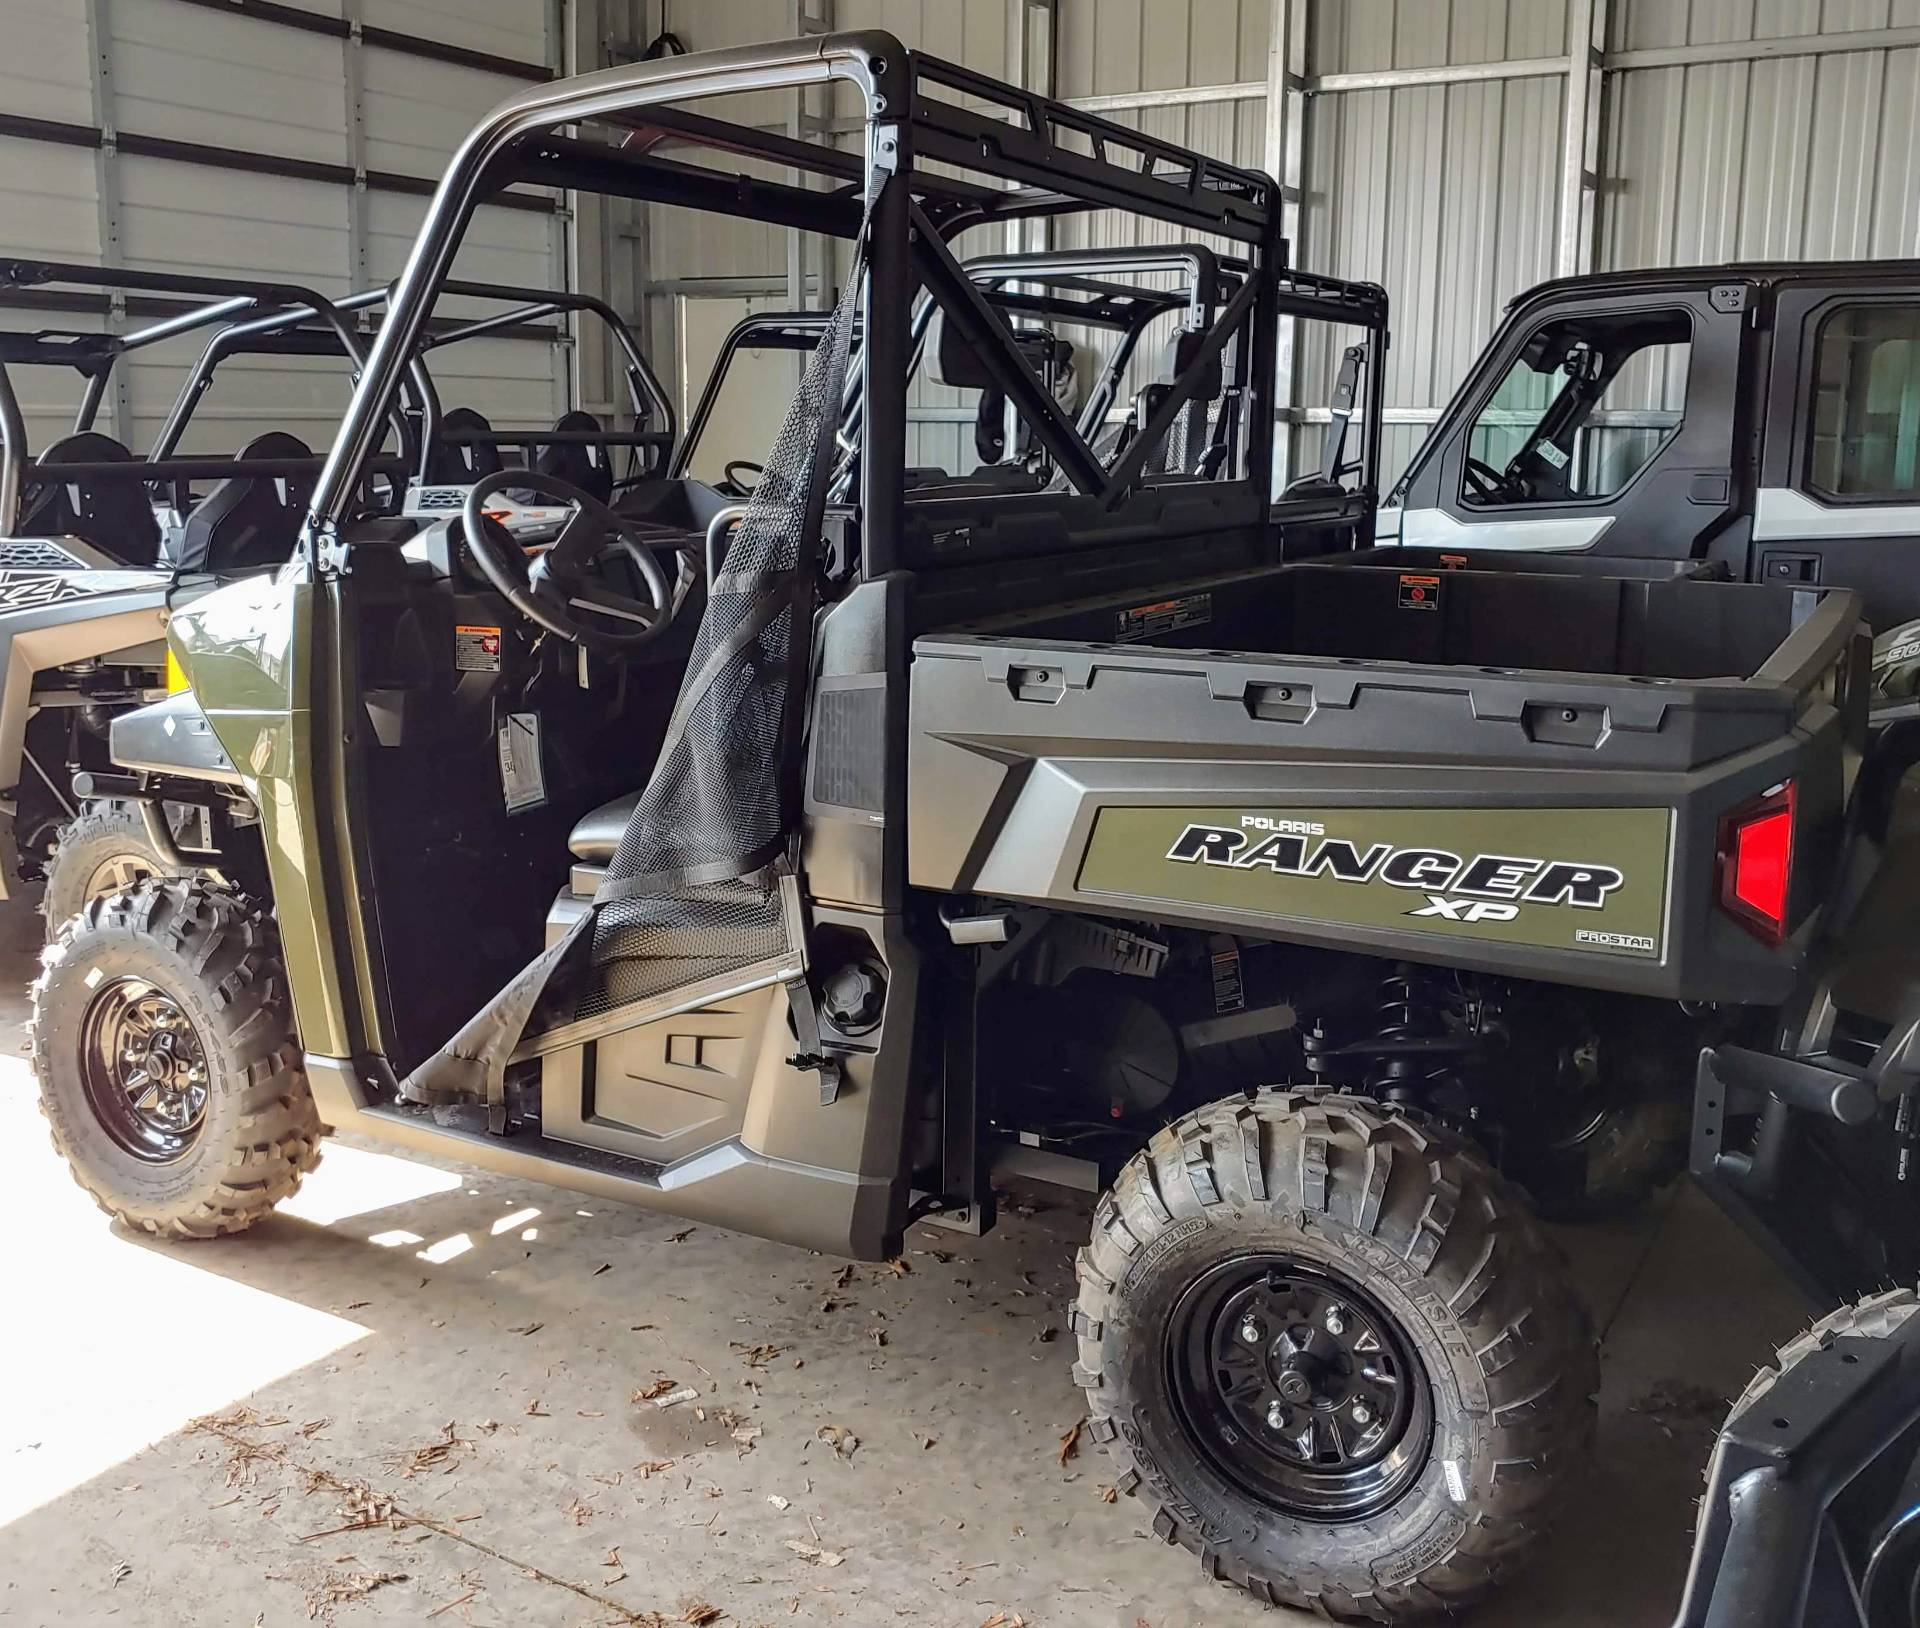 2019 Polaris Ranger XP 900 in Statesville, North Carolina - Photo 4